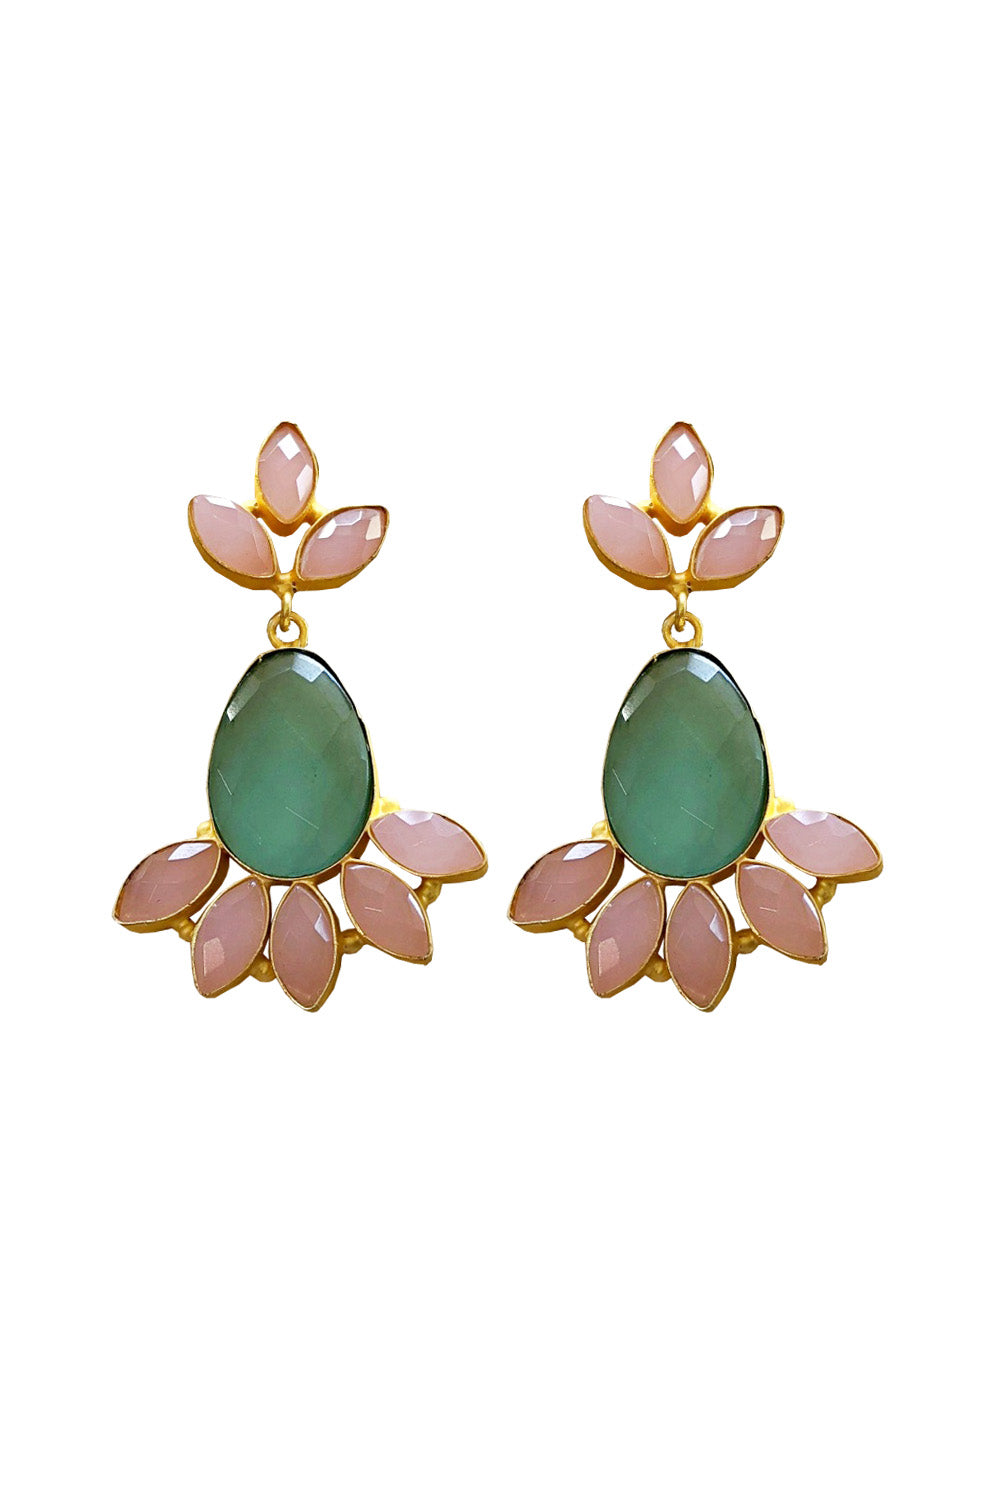 Ophelia Earrings - Kabana Shop